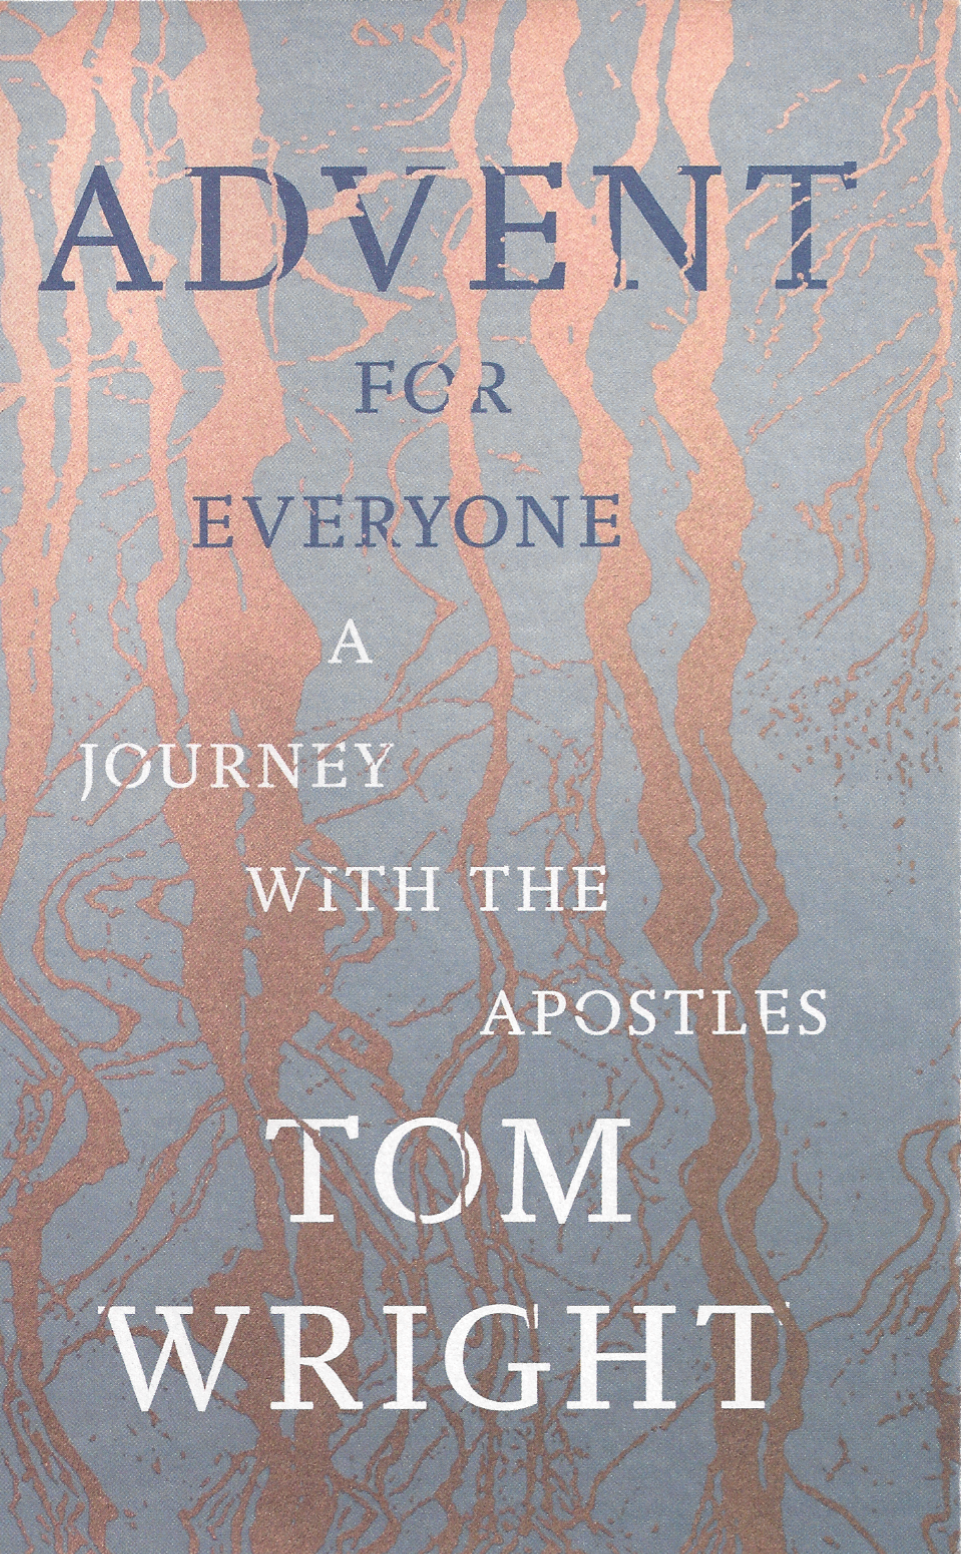 A journey with the apostles